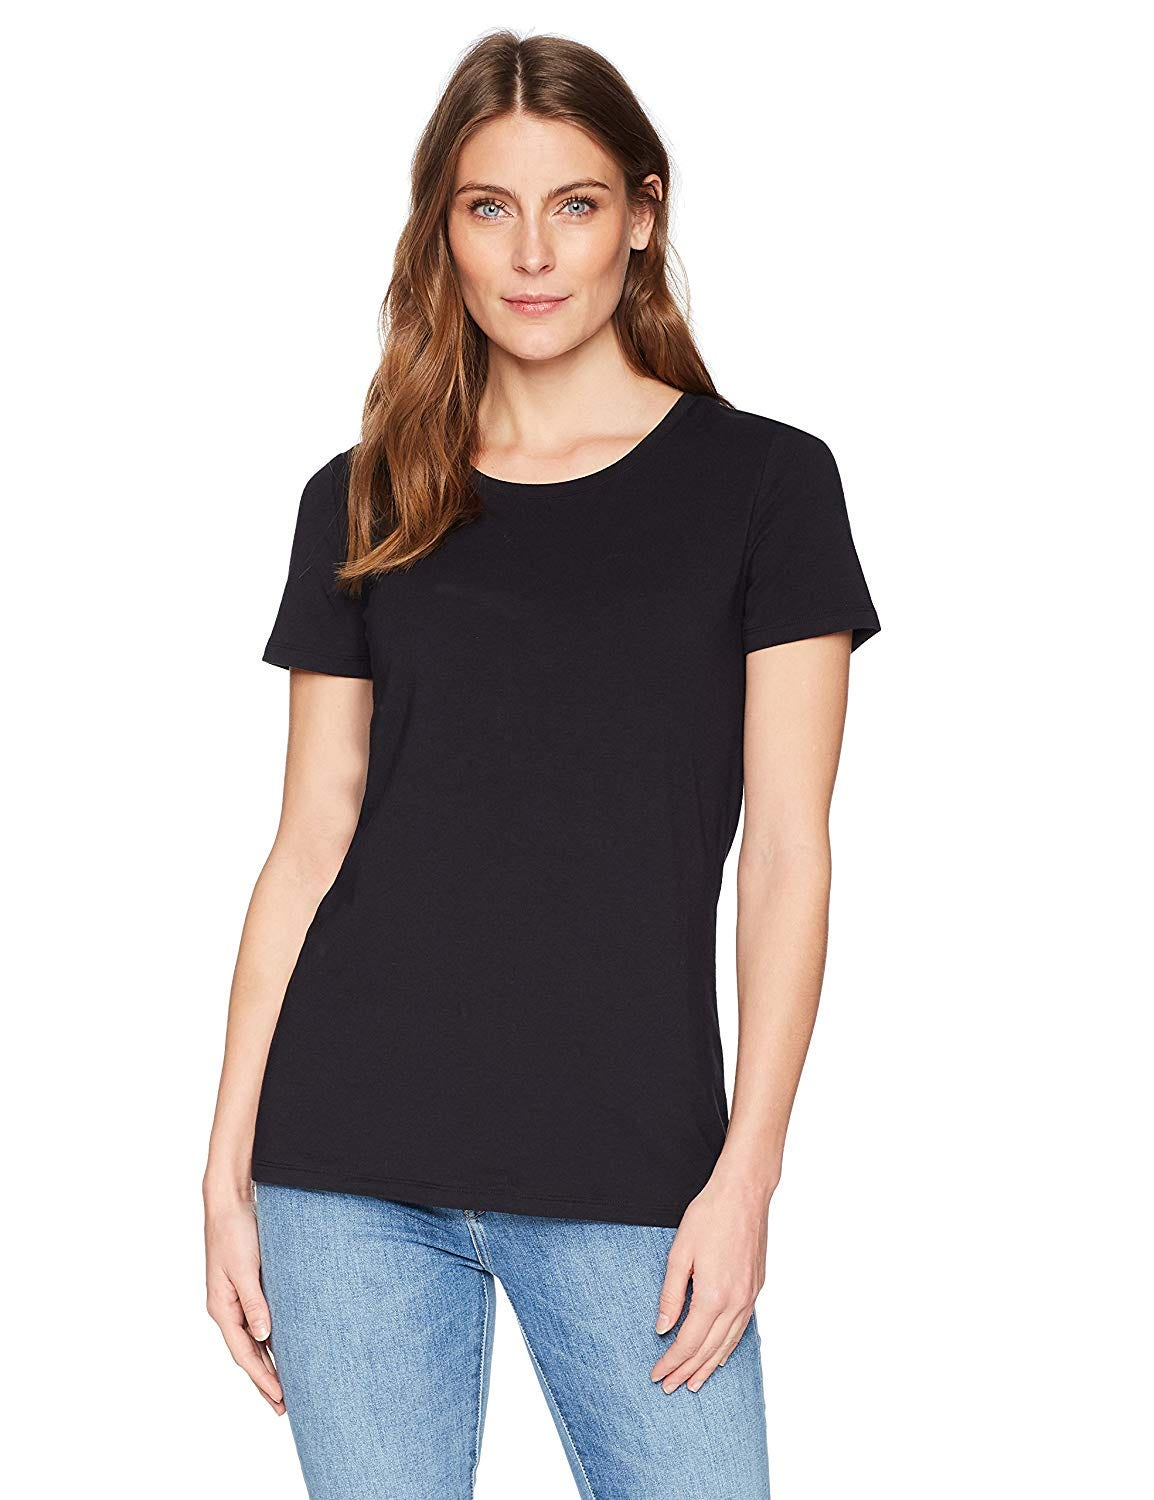 909d440cf Best Quality Womens Black T-Shirts 2019 Brand Reviews